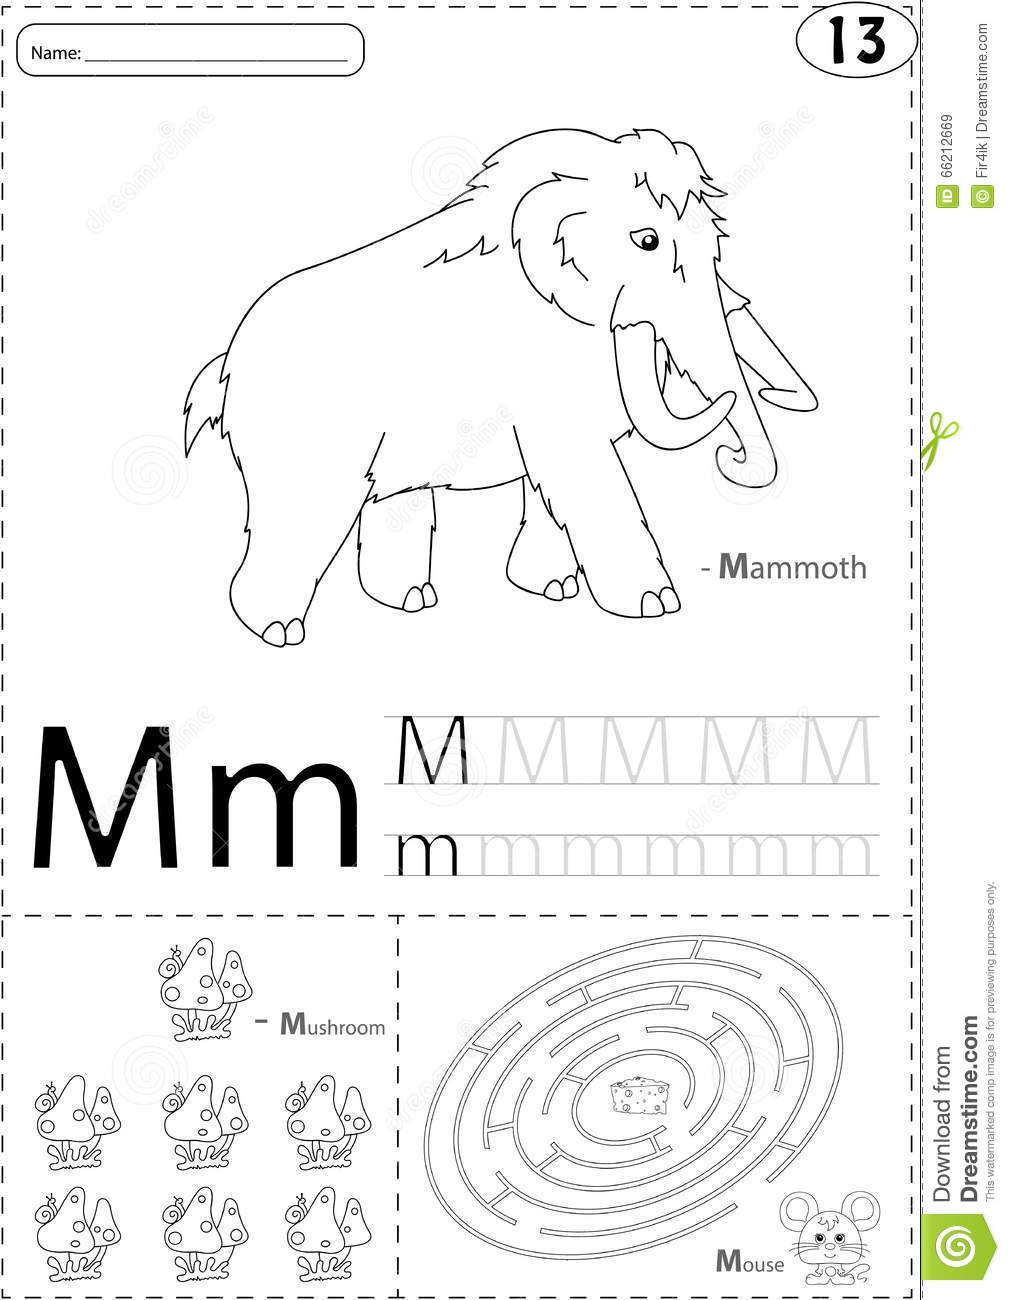 Stock Illustration Cartoon Mammoth Mushroom Mouse Alphabet Tracing Worksheet Writing Z Coloring Book Educational Game Kids Image66212669 on letter e vector